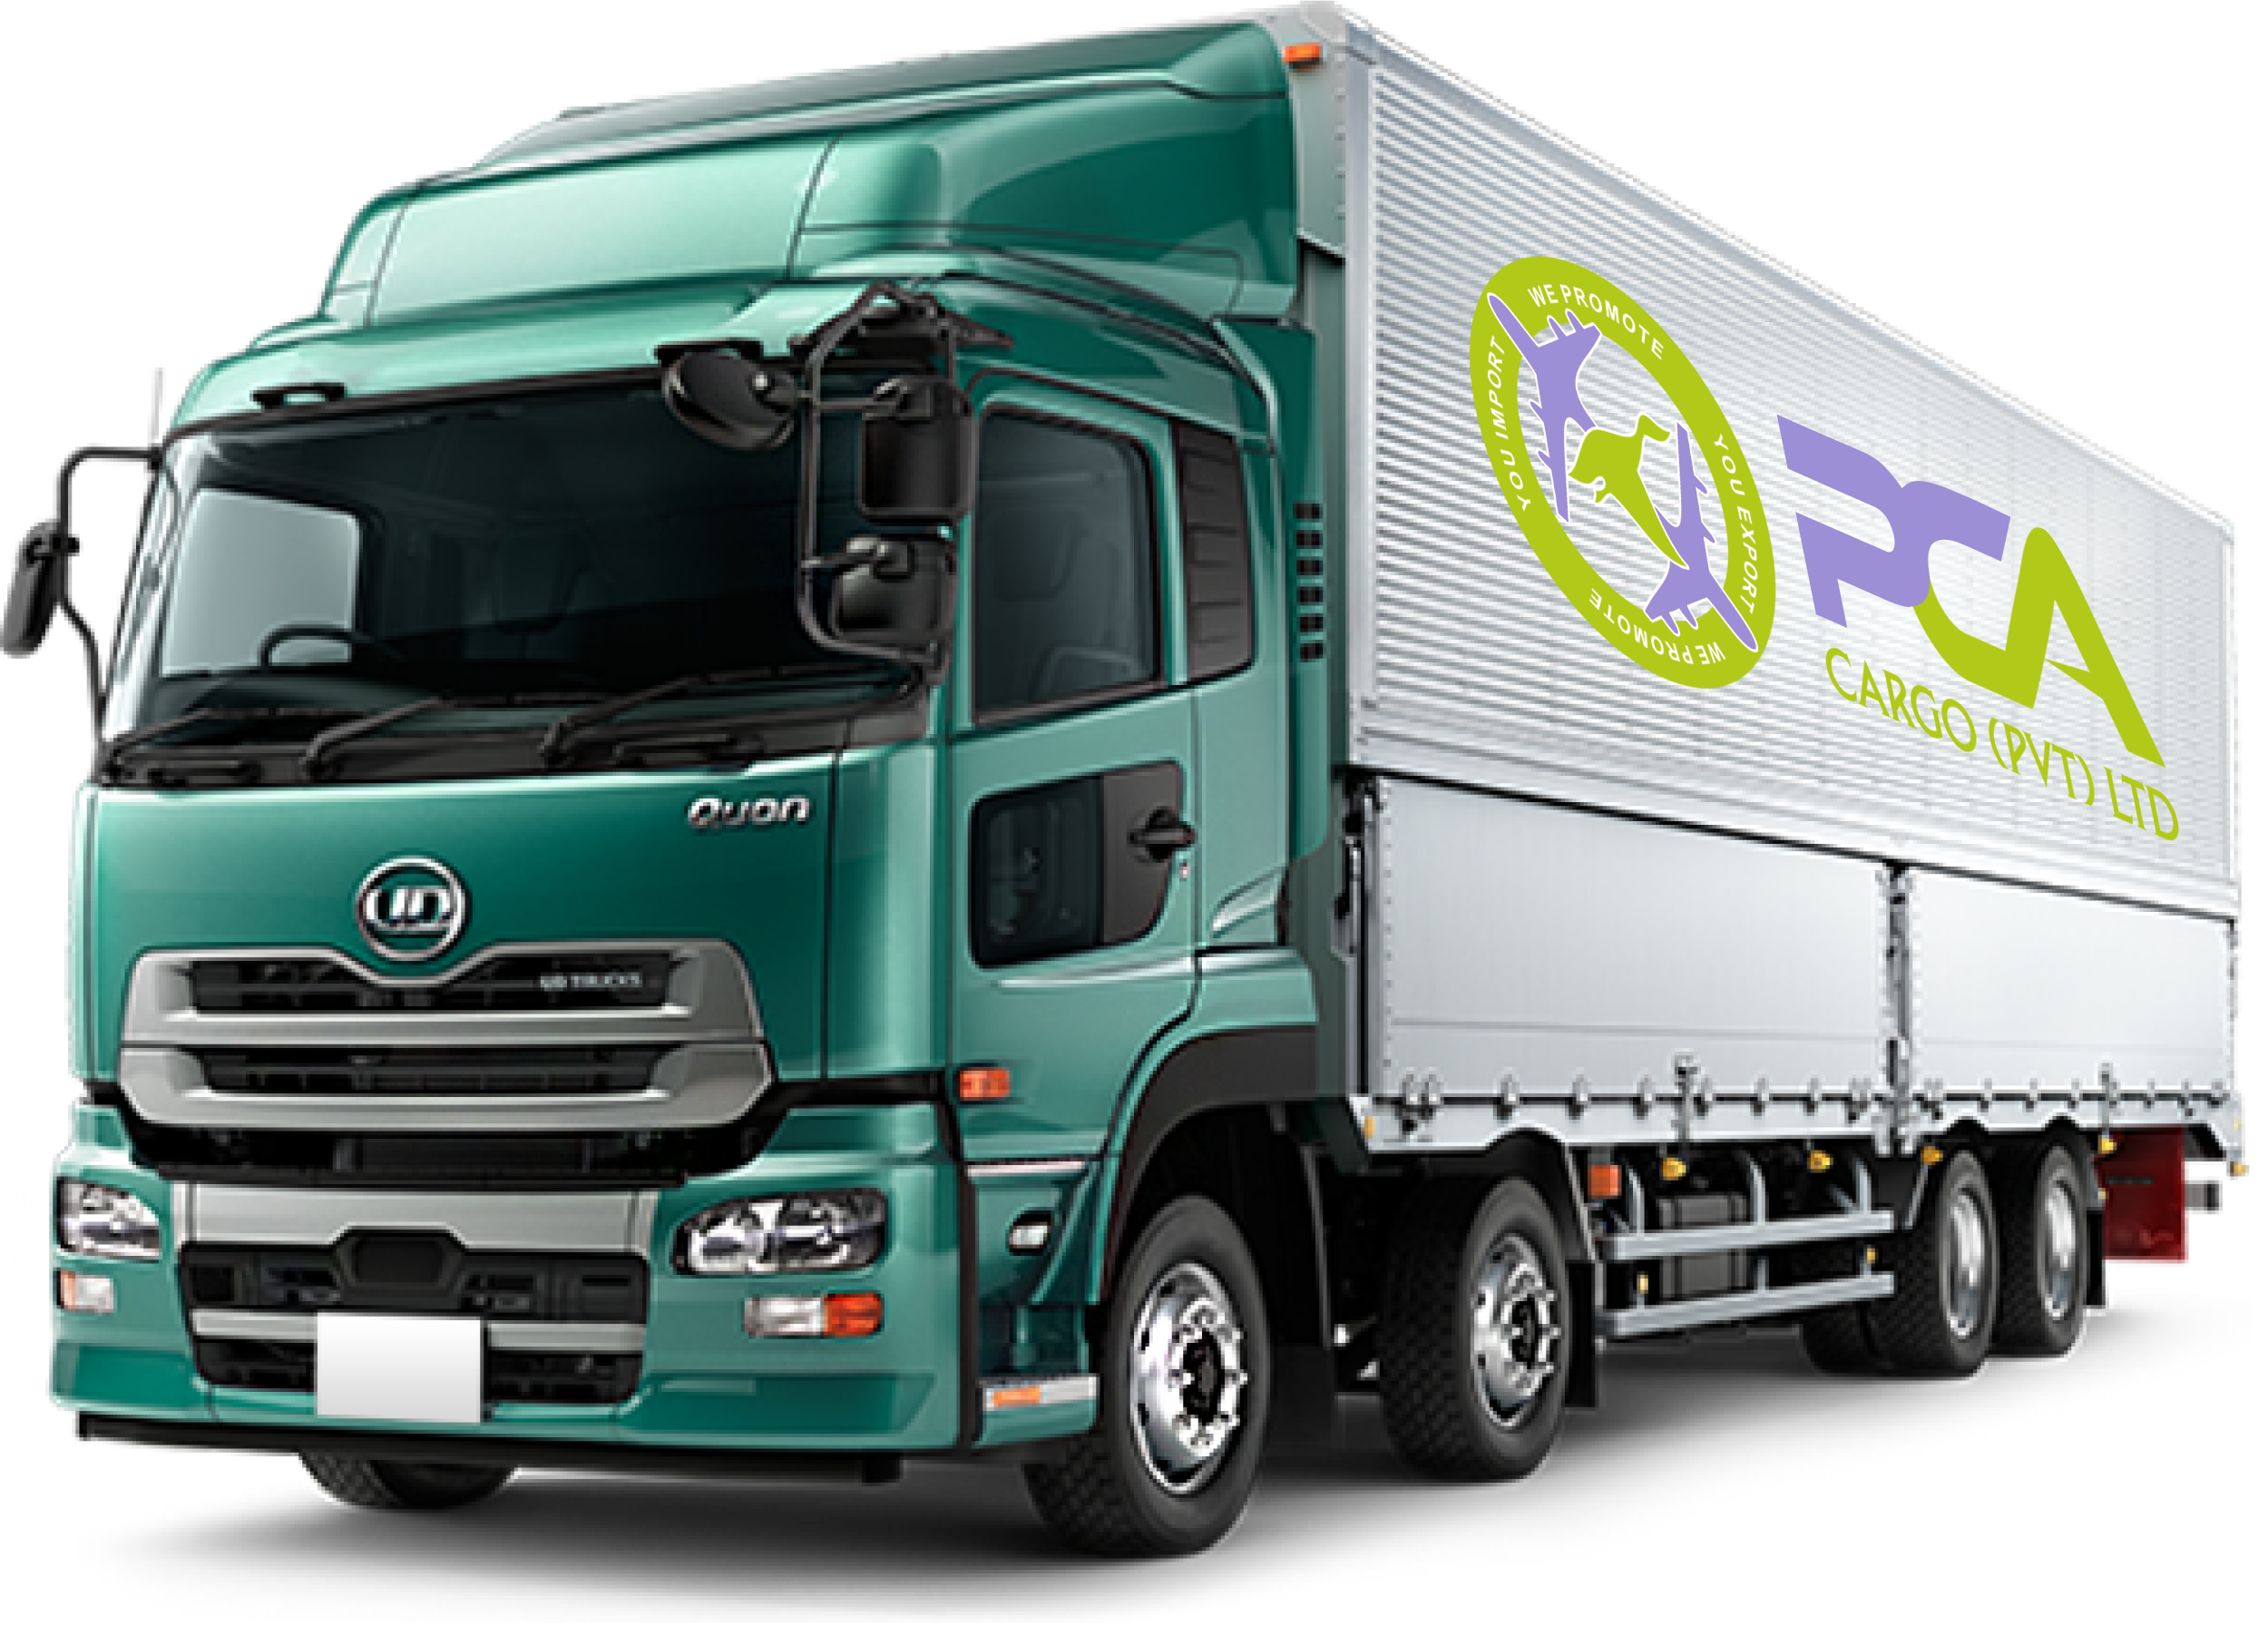 https://www.pcacargo.com/wp-content/uploads/2015/10/truck_green-1.png